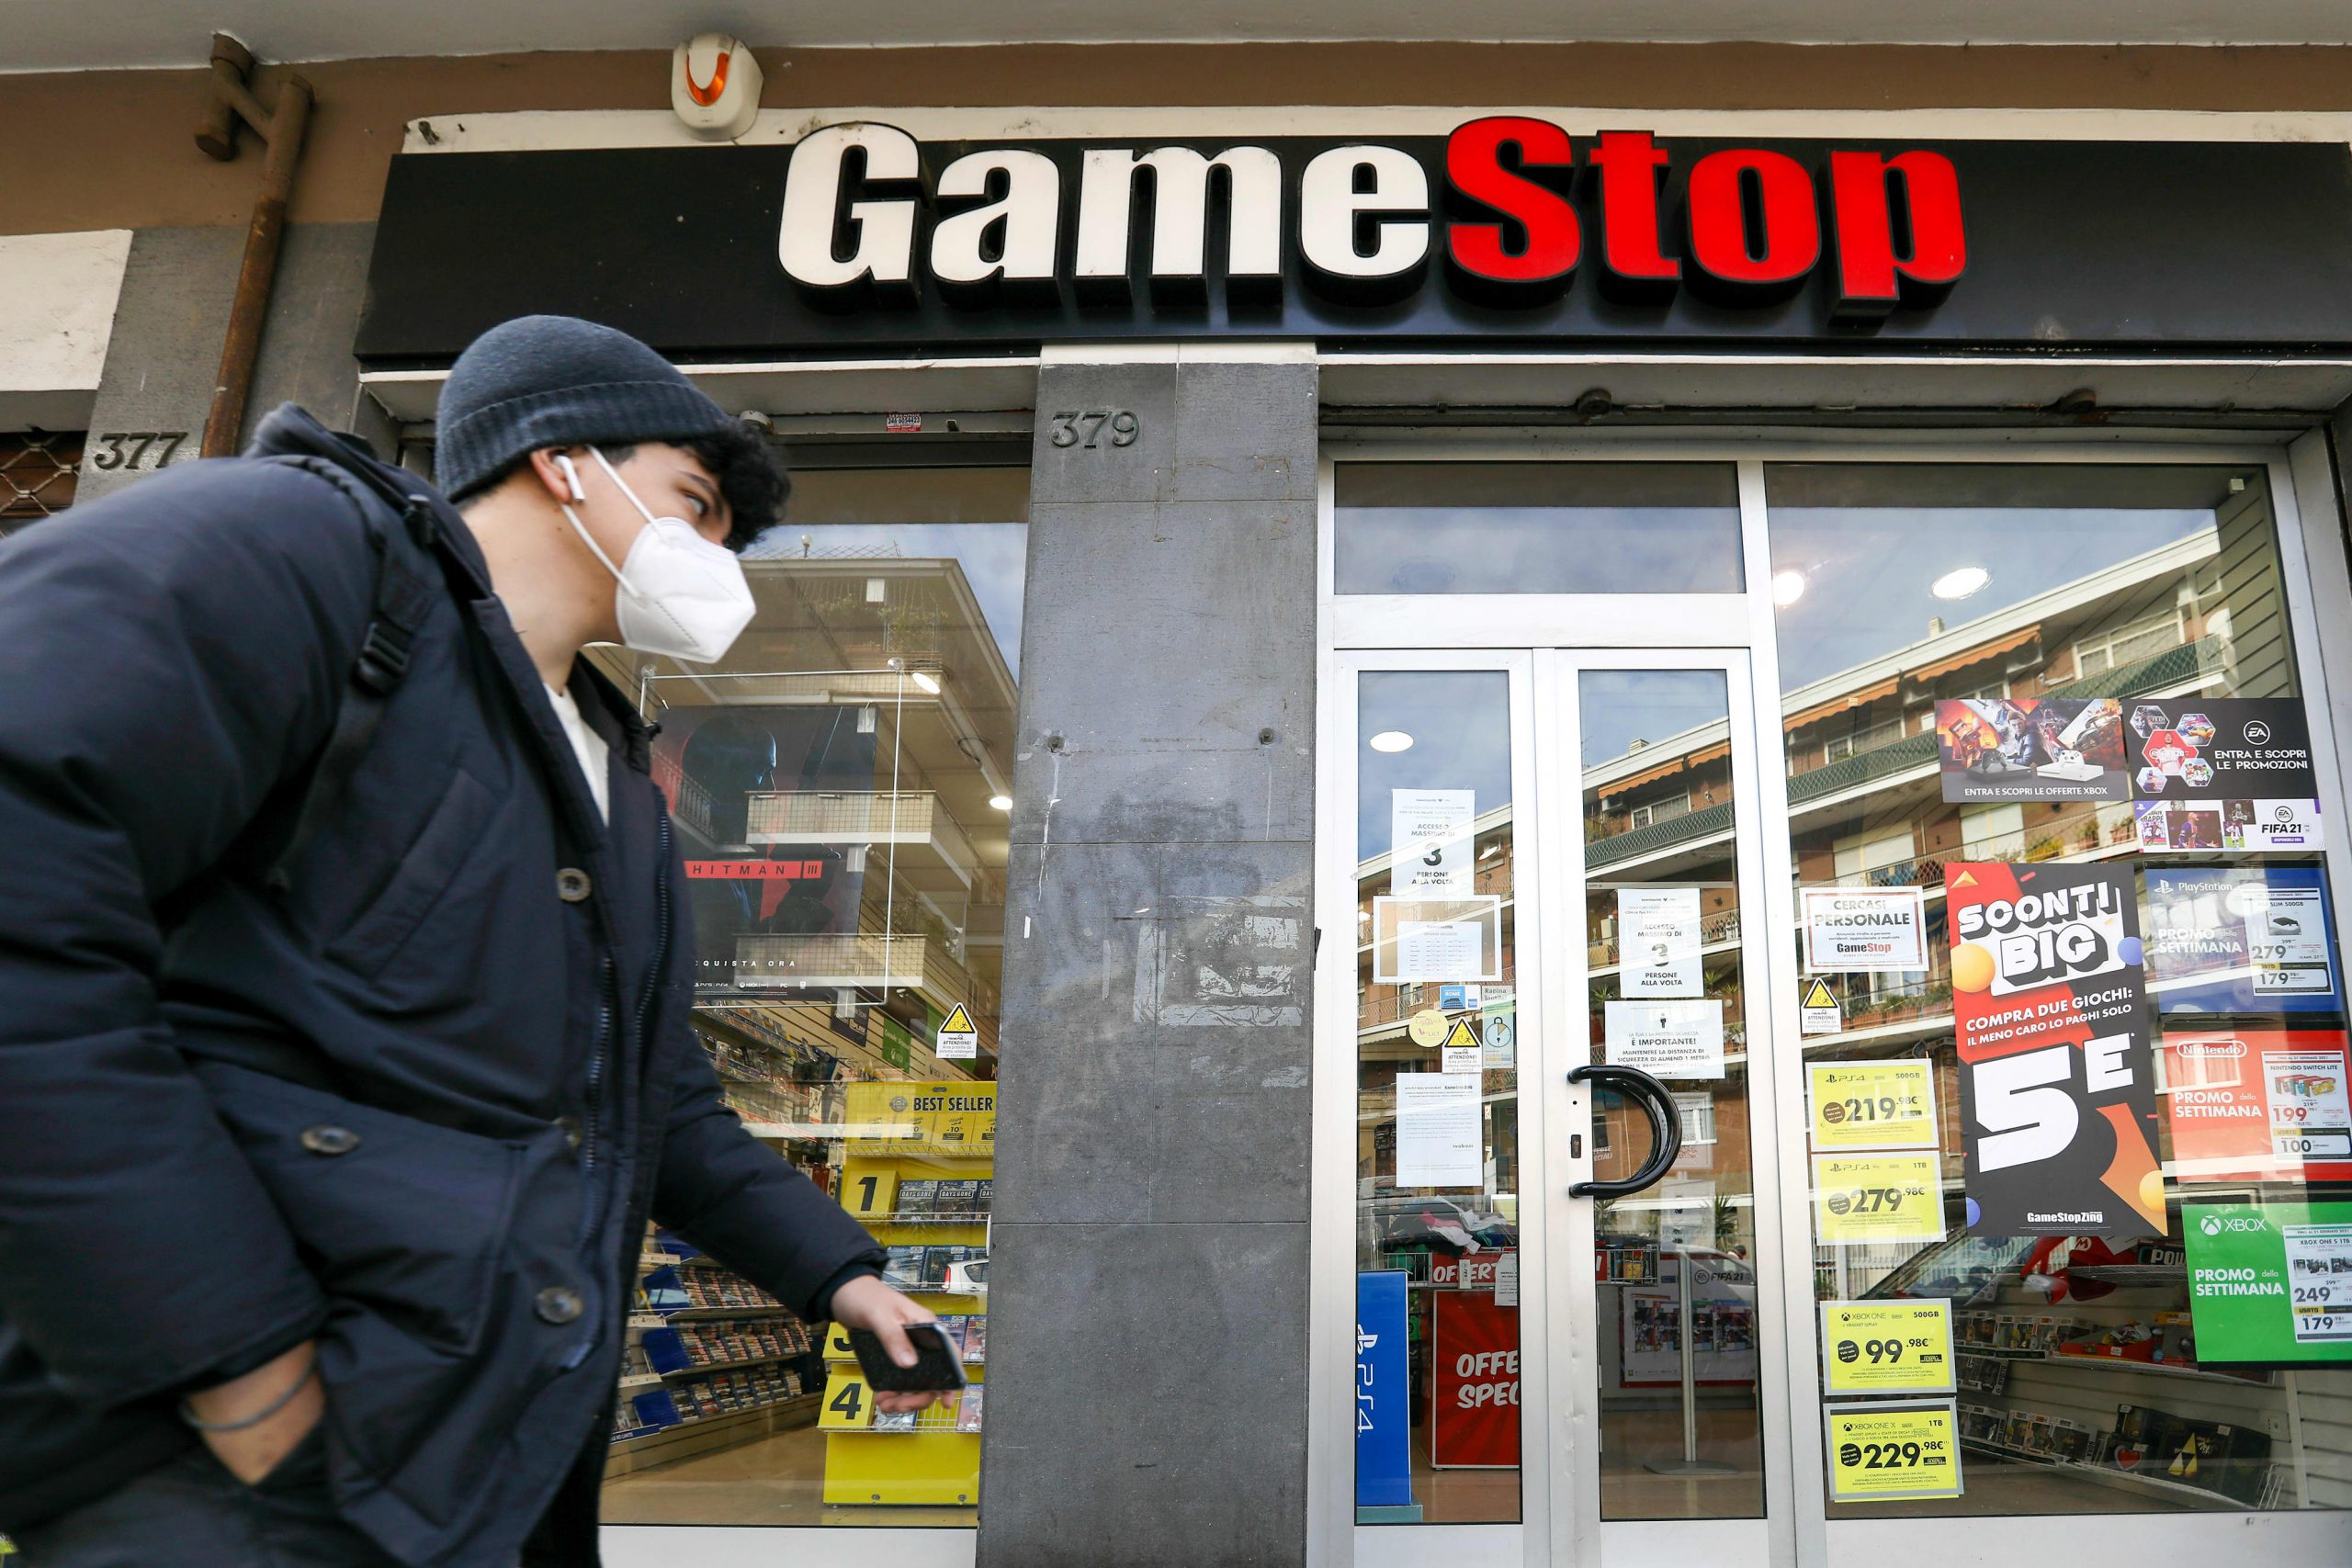 AMC, Gamestop share offerings are longterm positives